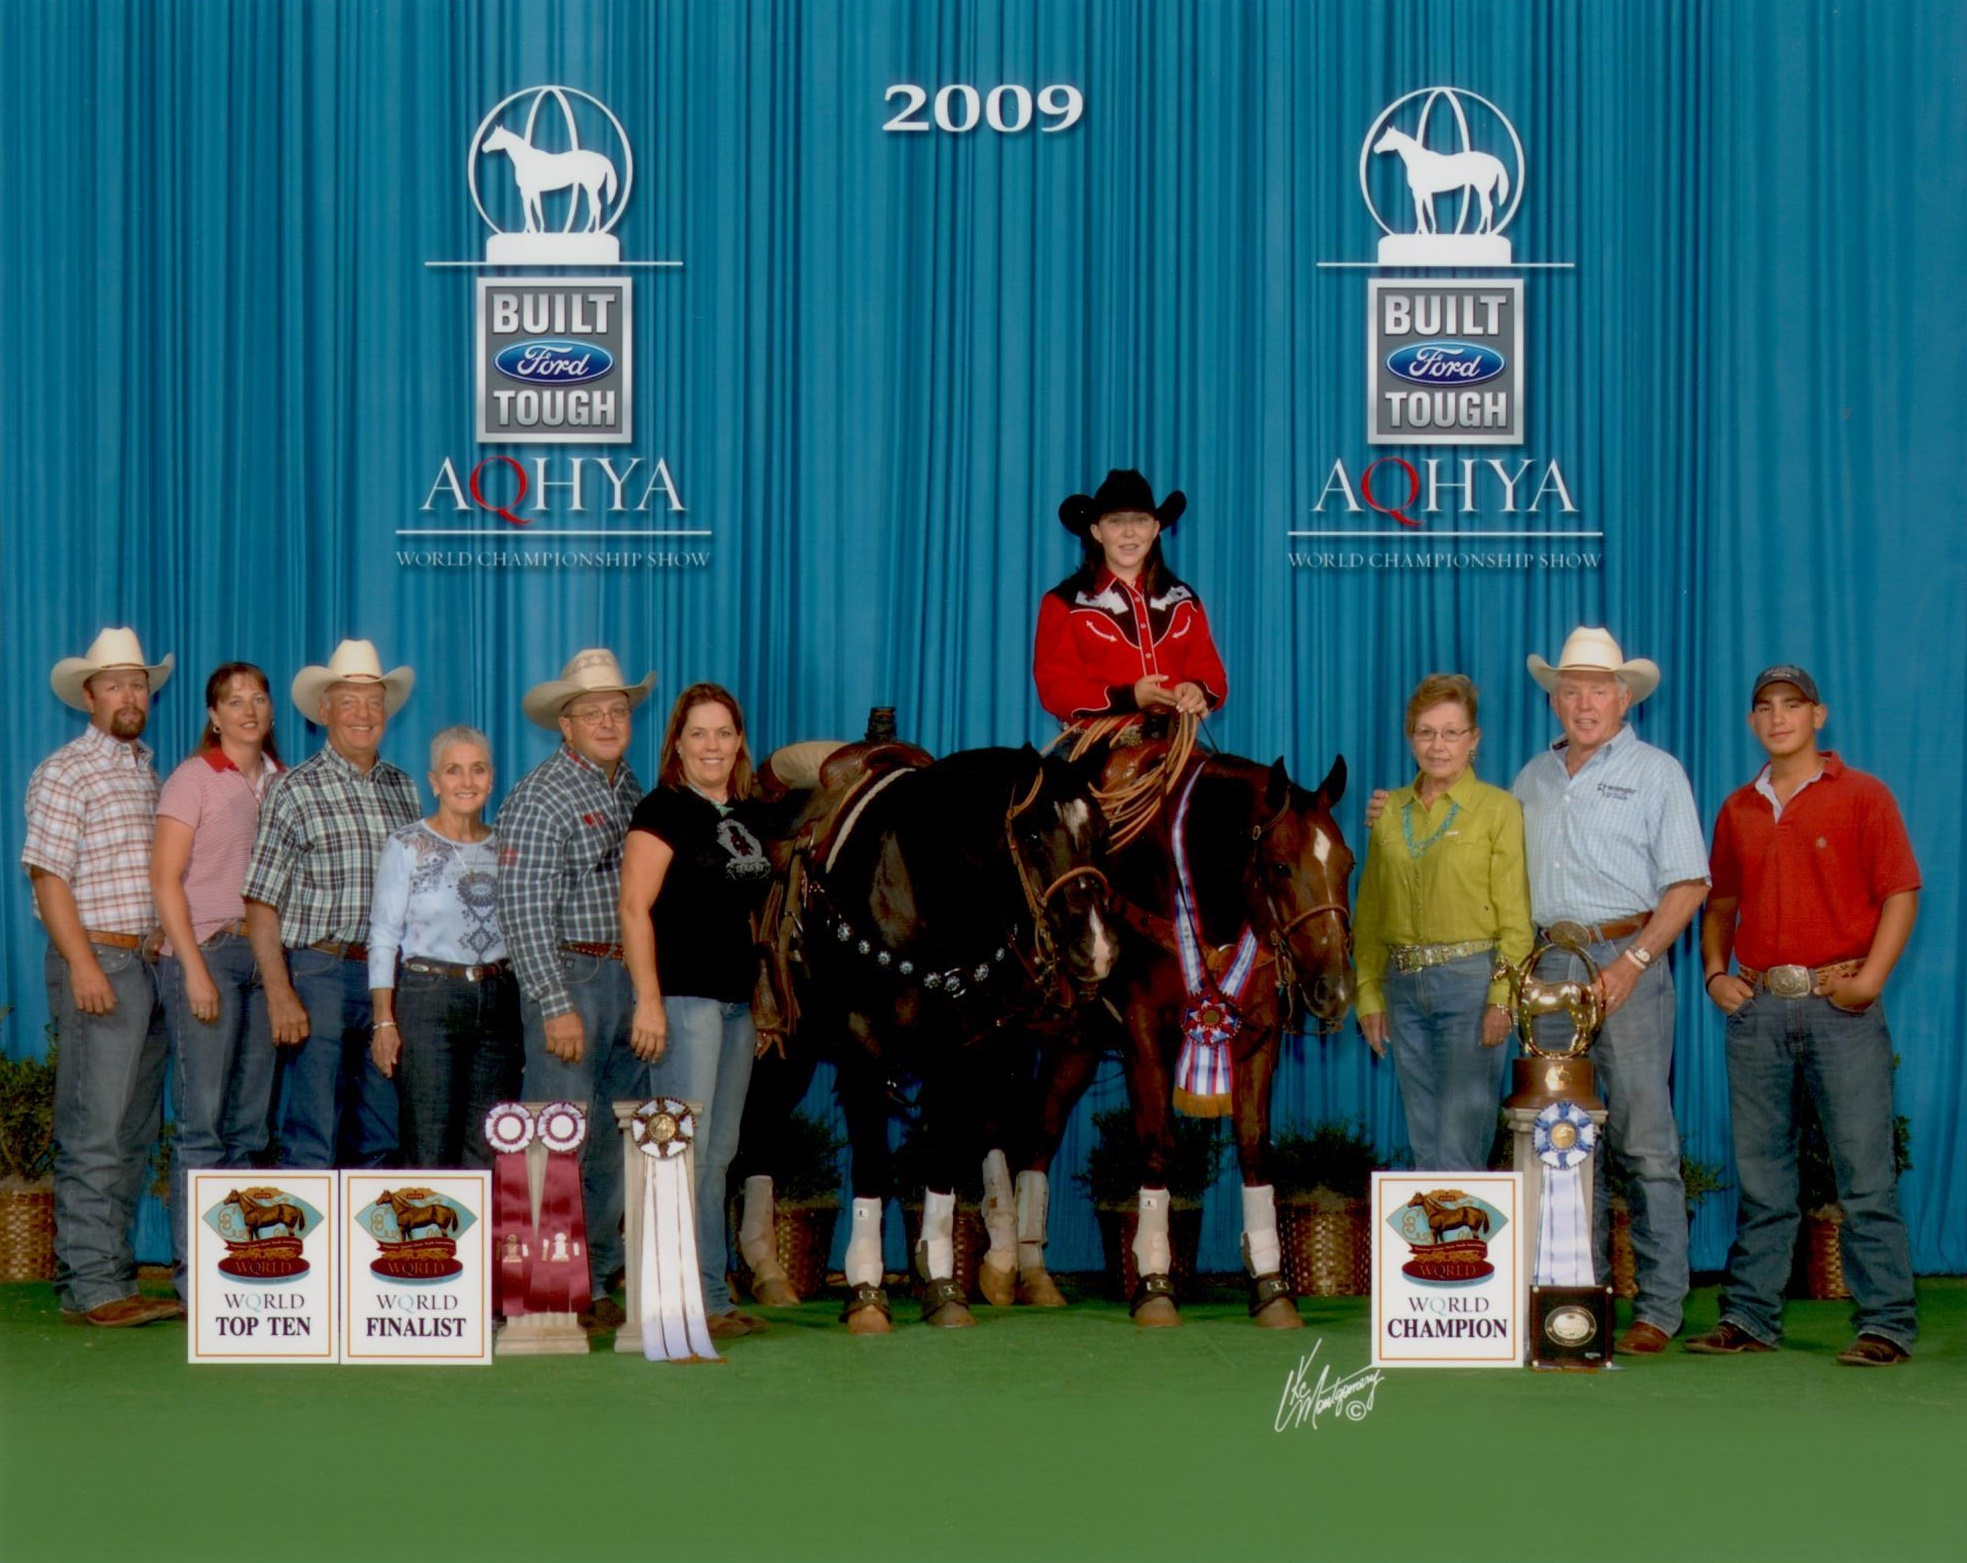 2009 AQHYA World Champion Heading Smart Shooter